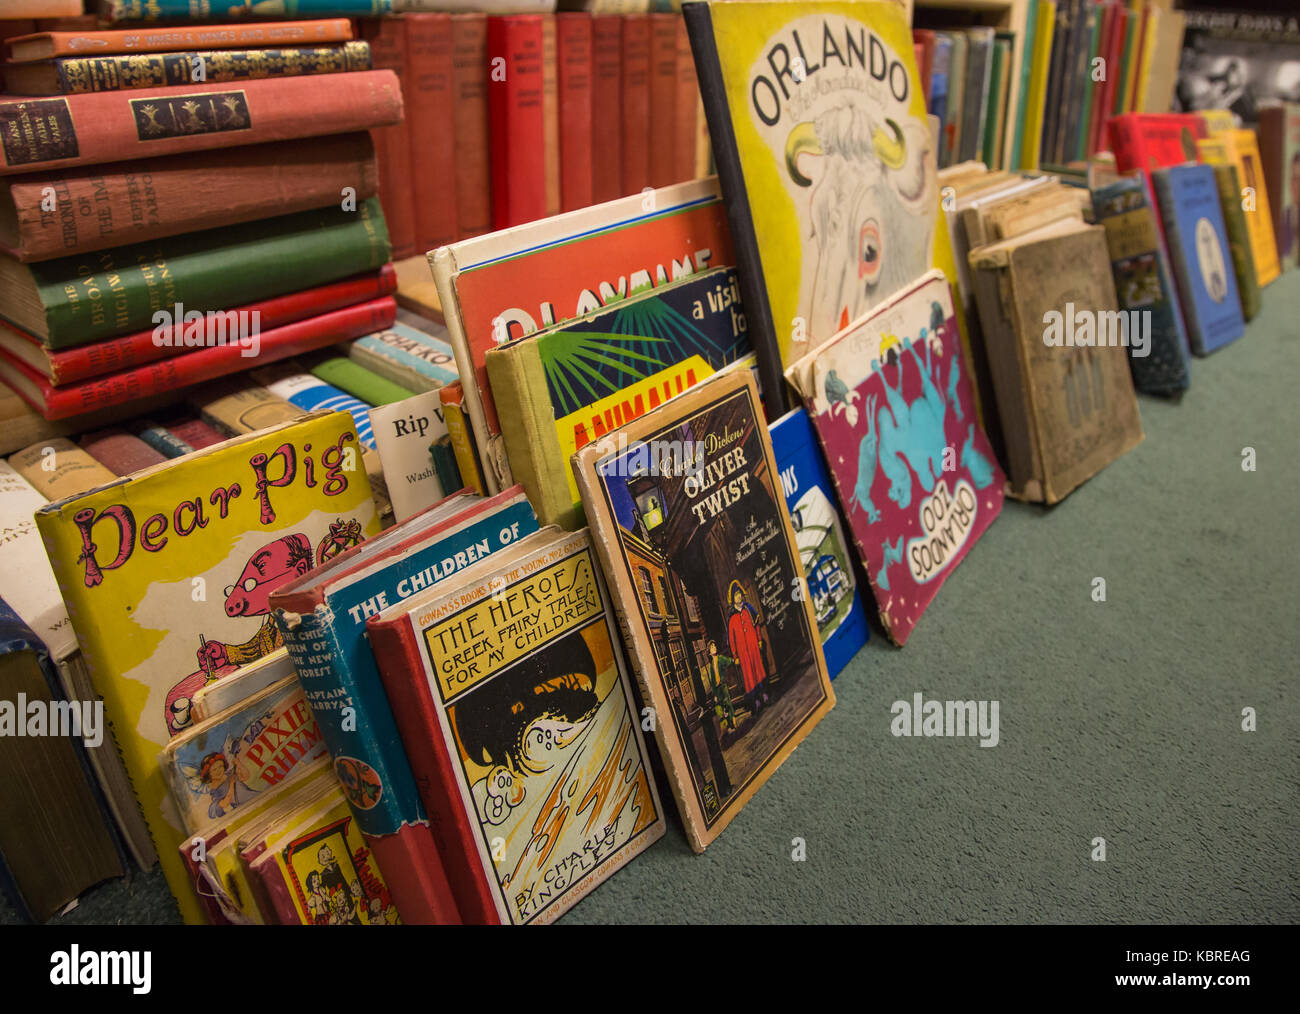 Childrens books in secondhand bookshop - Stock Image